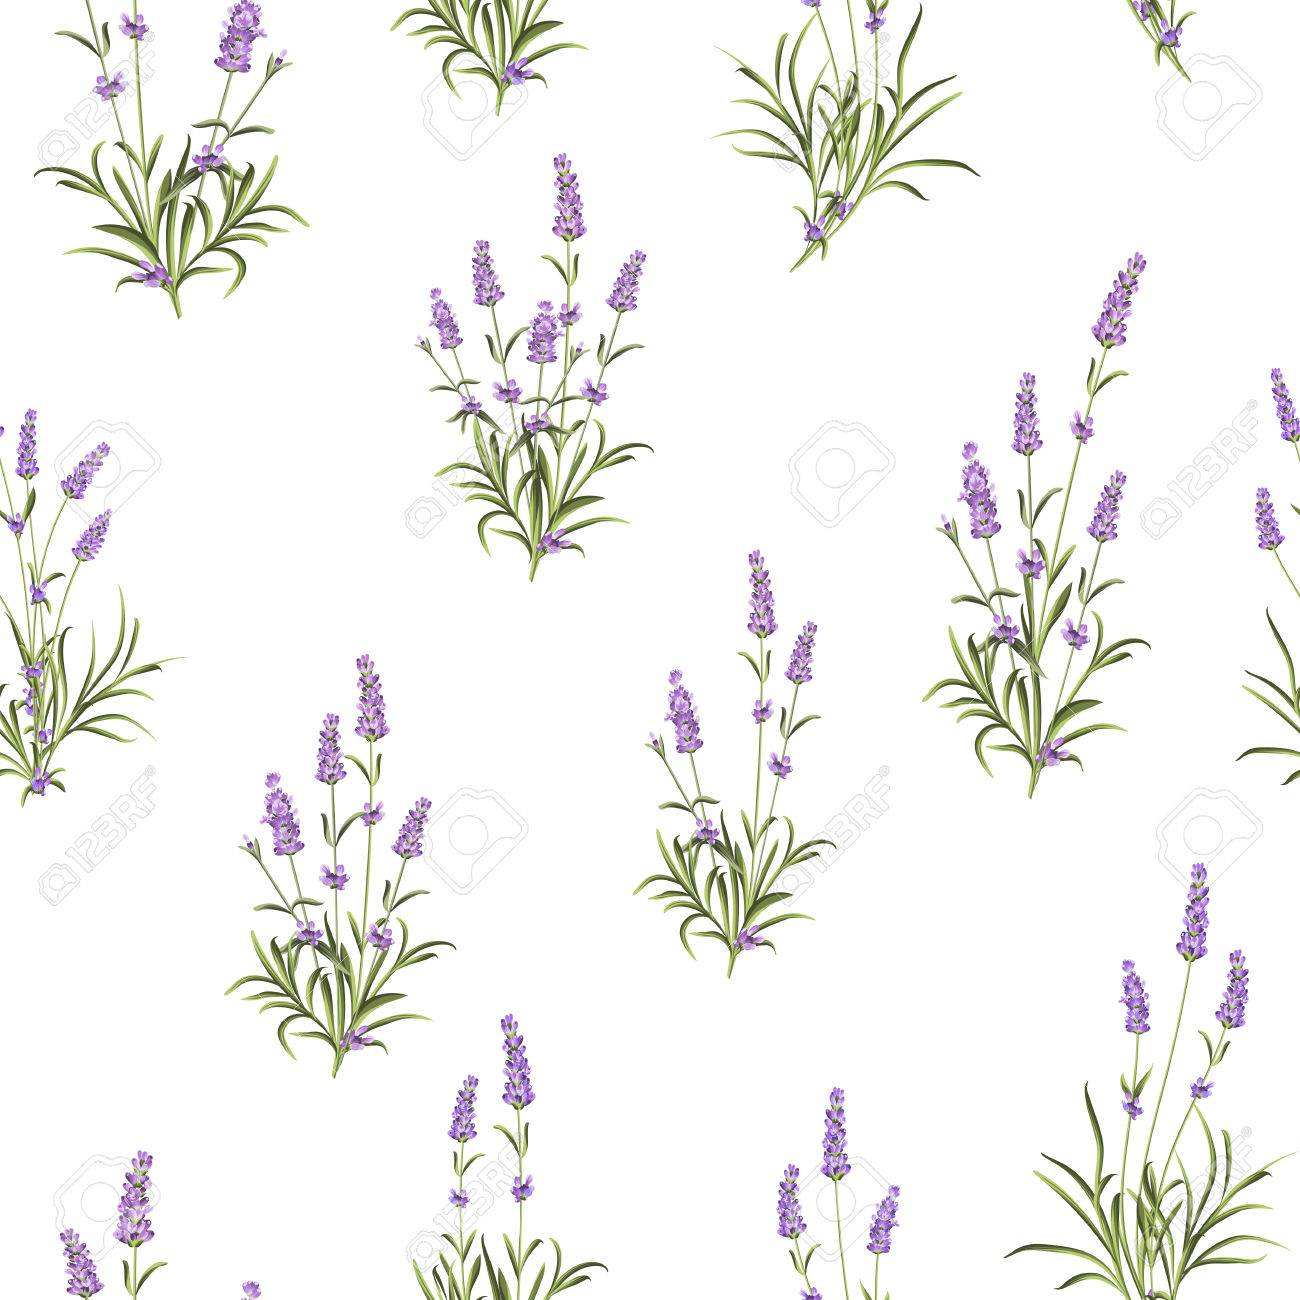 The Lavender Seamless pattern. Bunch of lavender flowers on a white background. Vector illustration. - 51374937